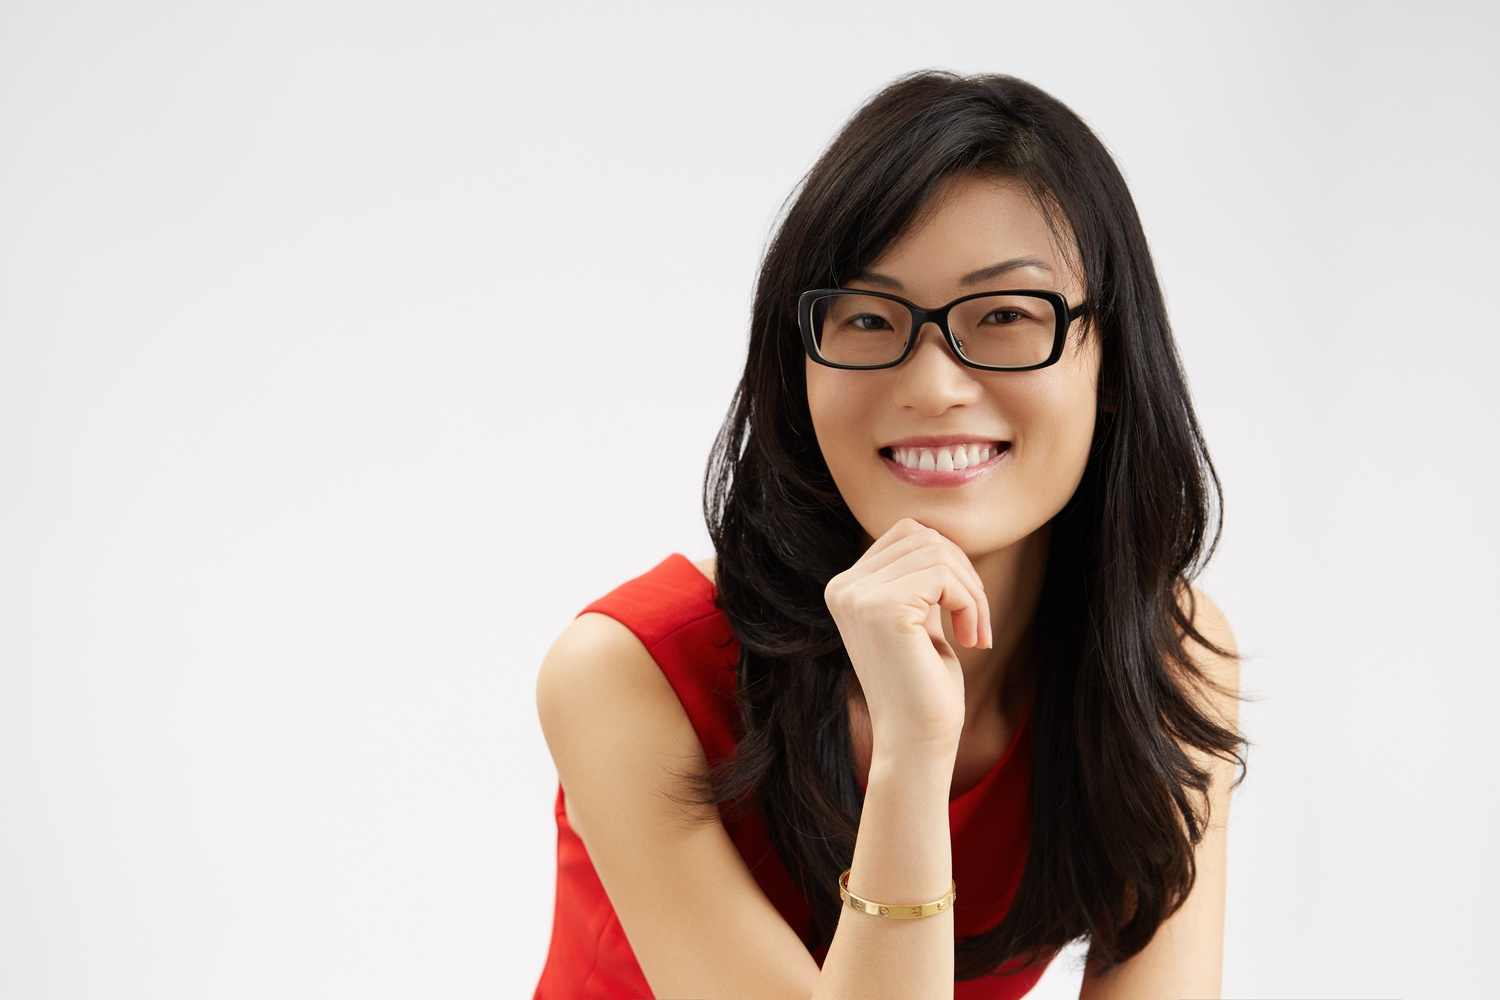 Kelly Yang is a best-selling author and alumna of the Harvard Law School.